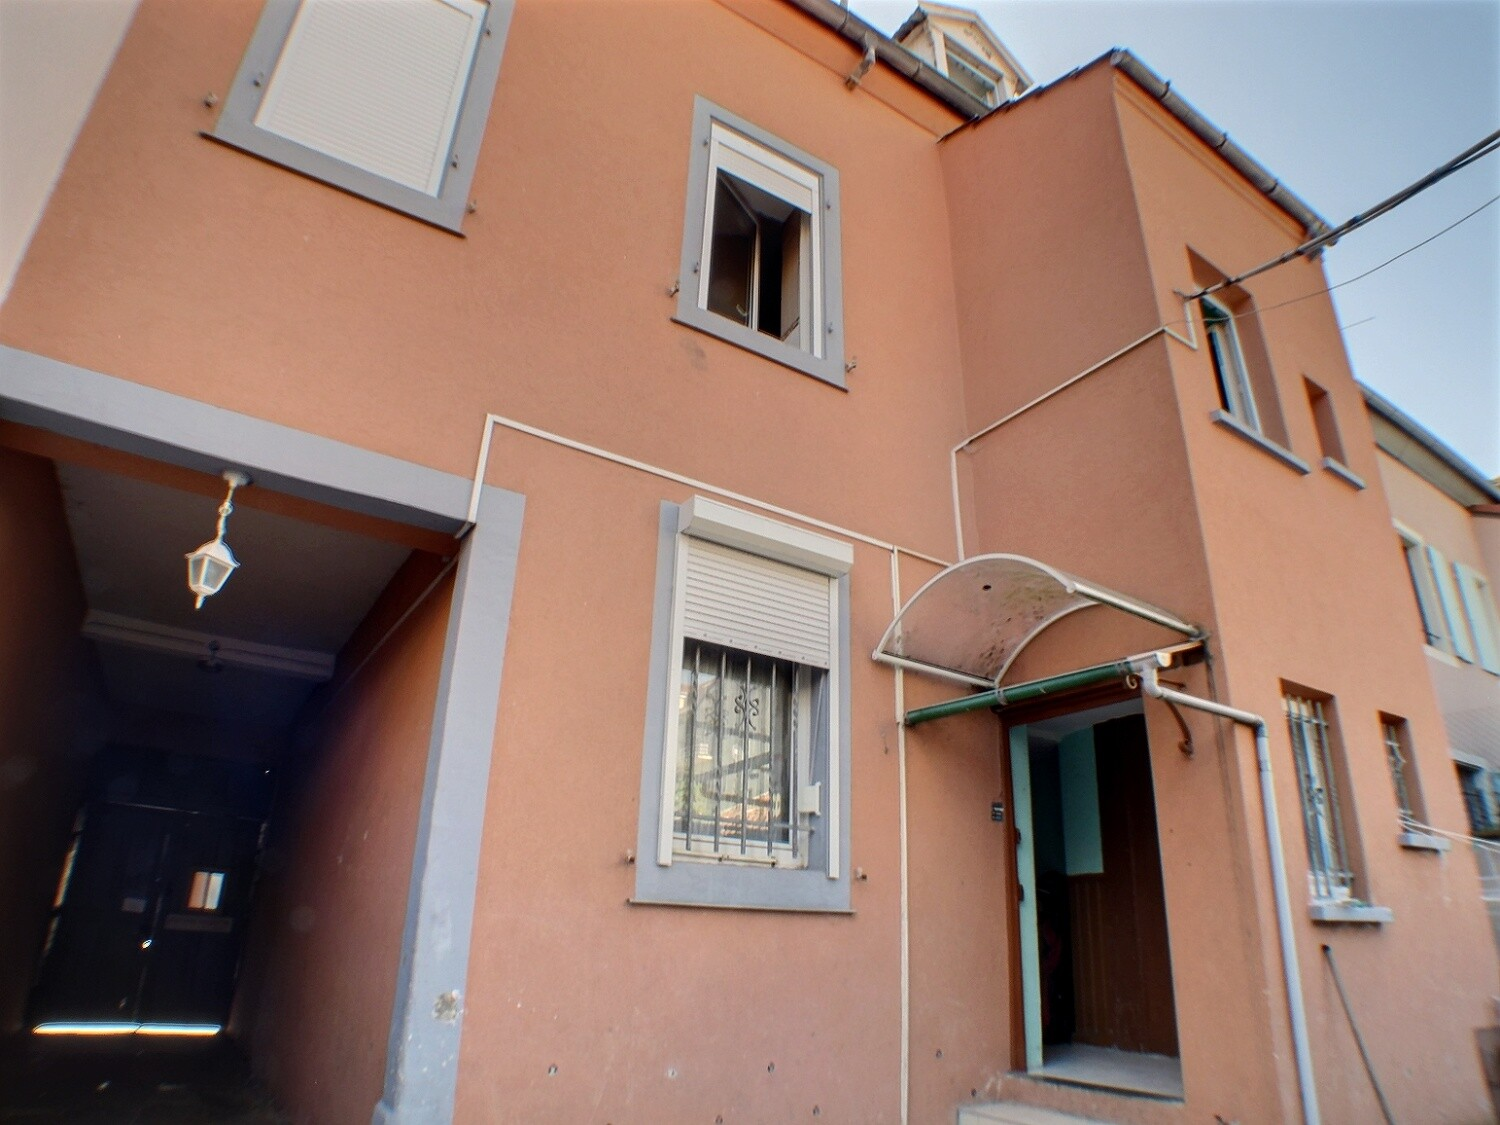 MULHOUSE, IMMEUBLE, 3 APPARTEMENTS